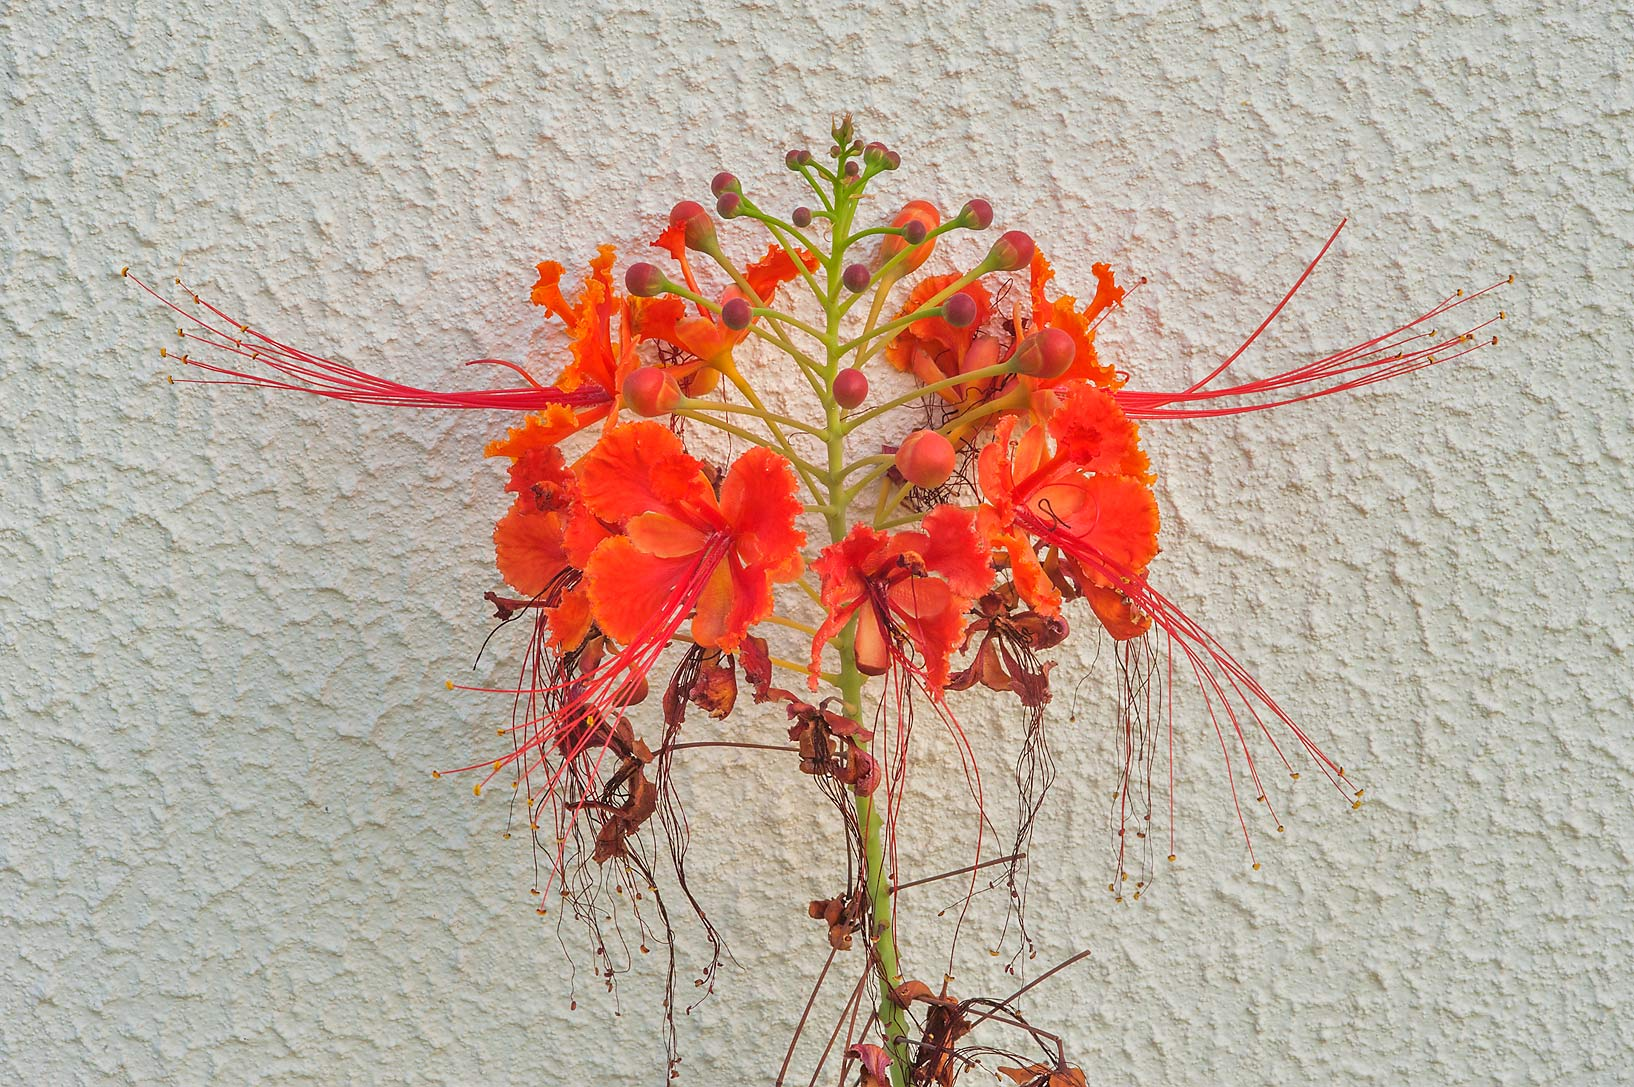 Peacock flower (Caesalpinia pulcherrima) in a...near a corner with Onaiza. Doha, Qatar